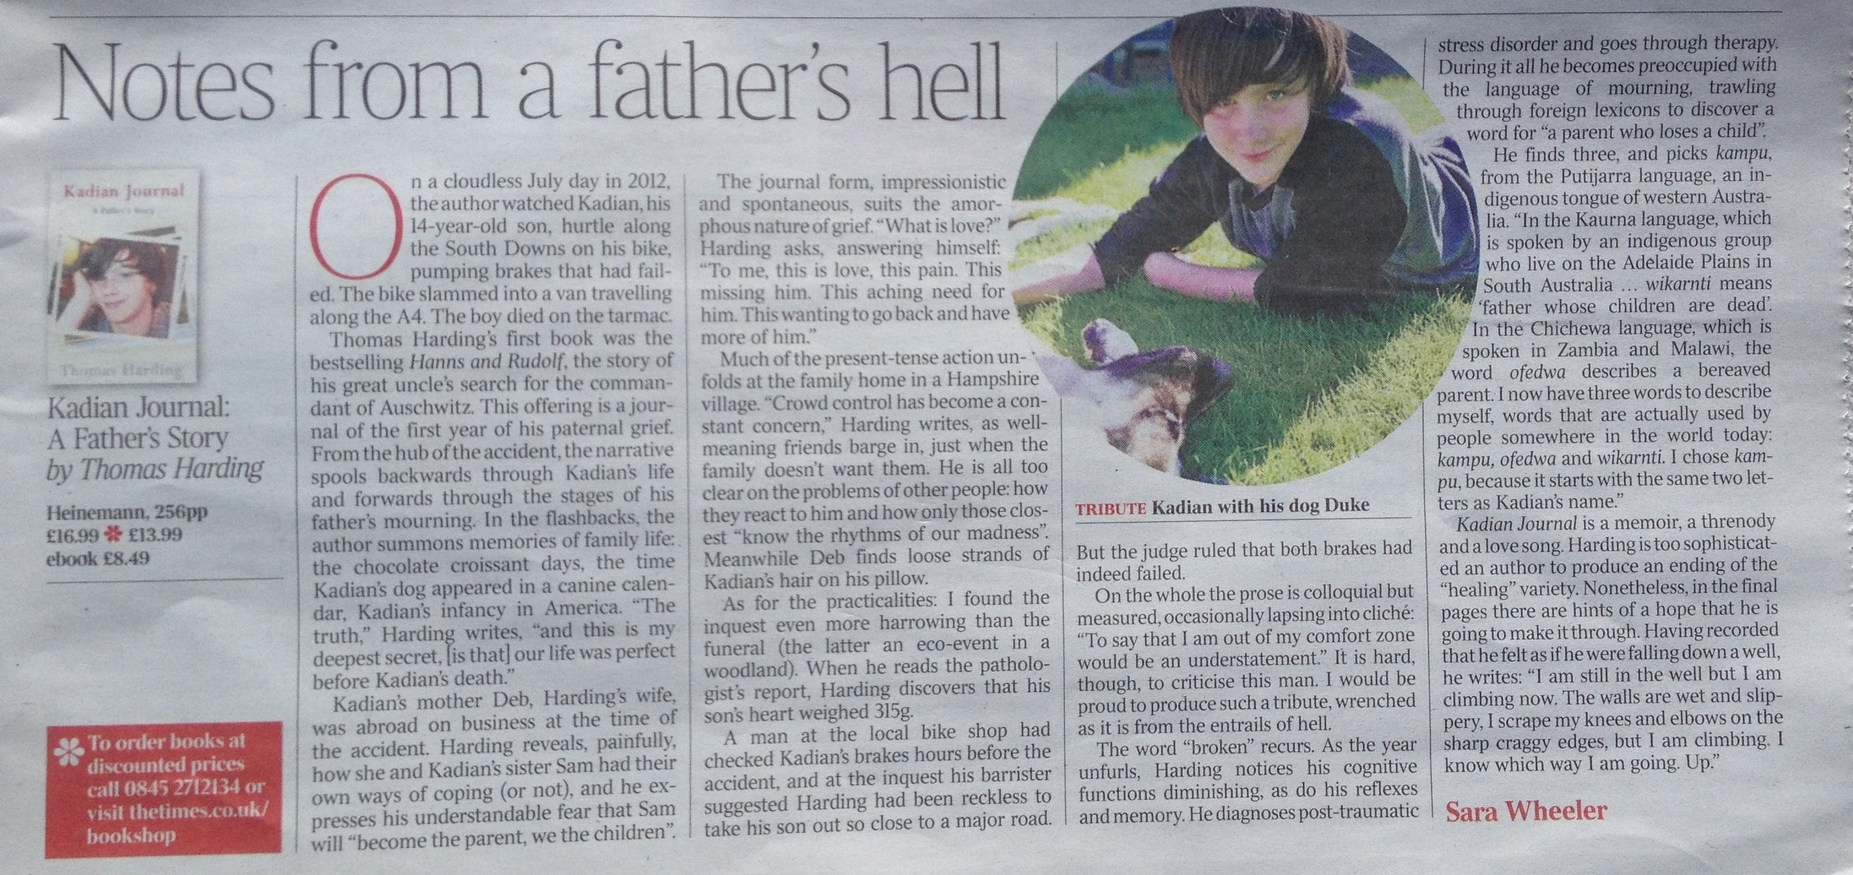 The Times 12 July 2014